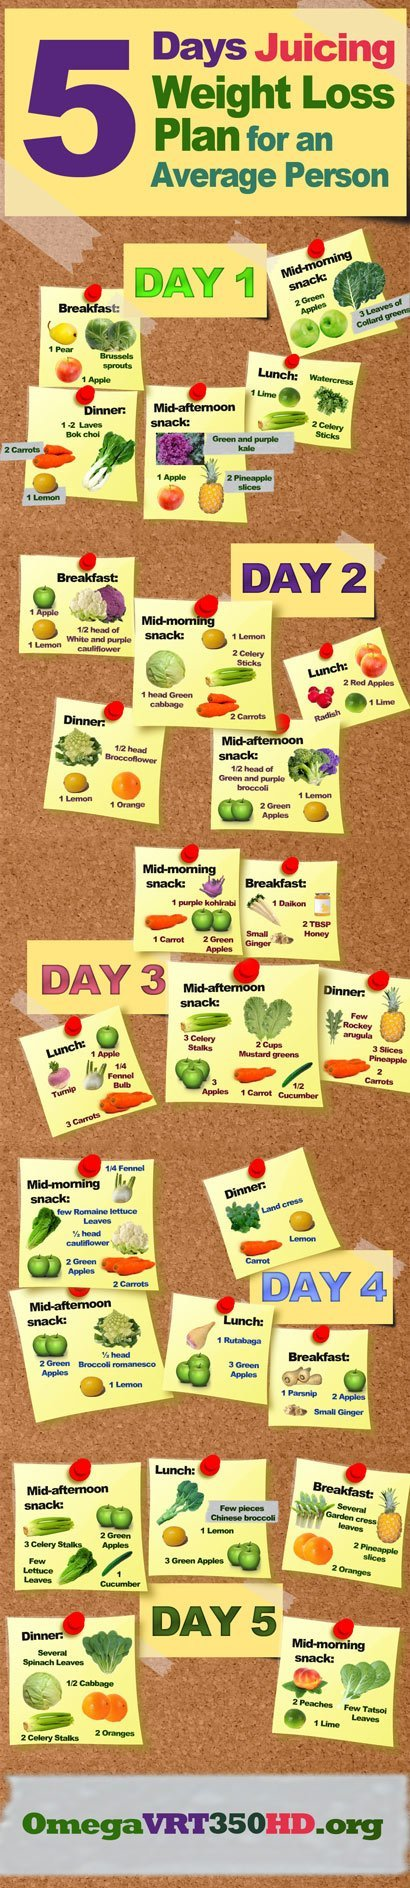 juicing diet plan for weight loss infographic